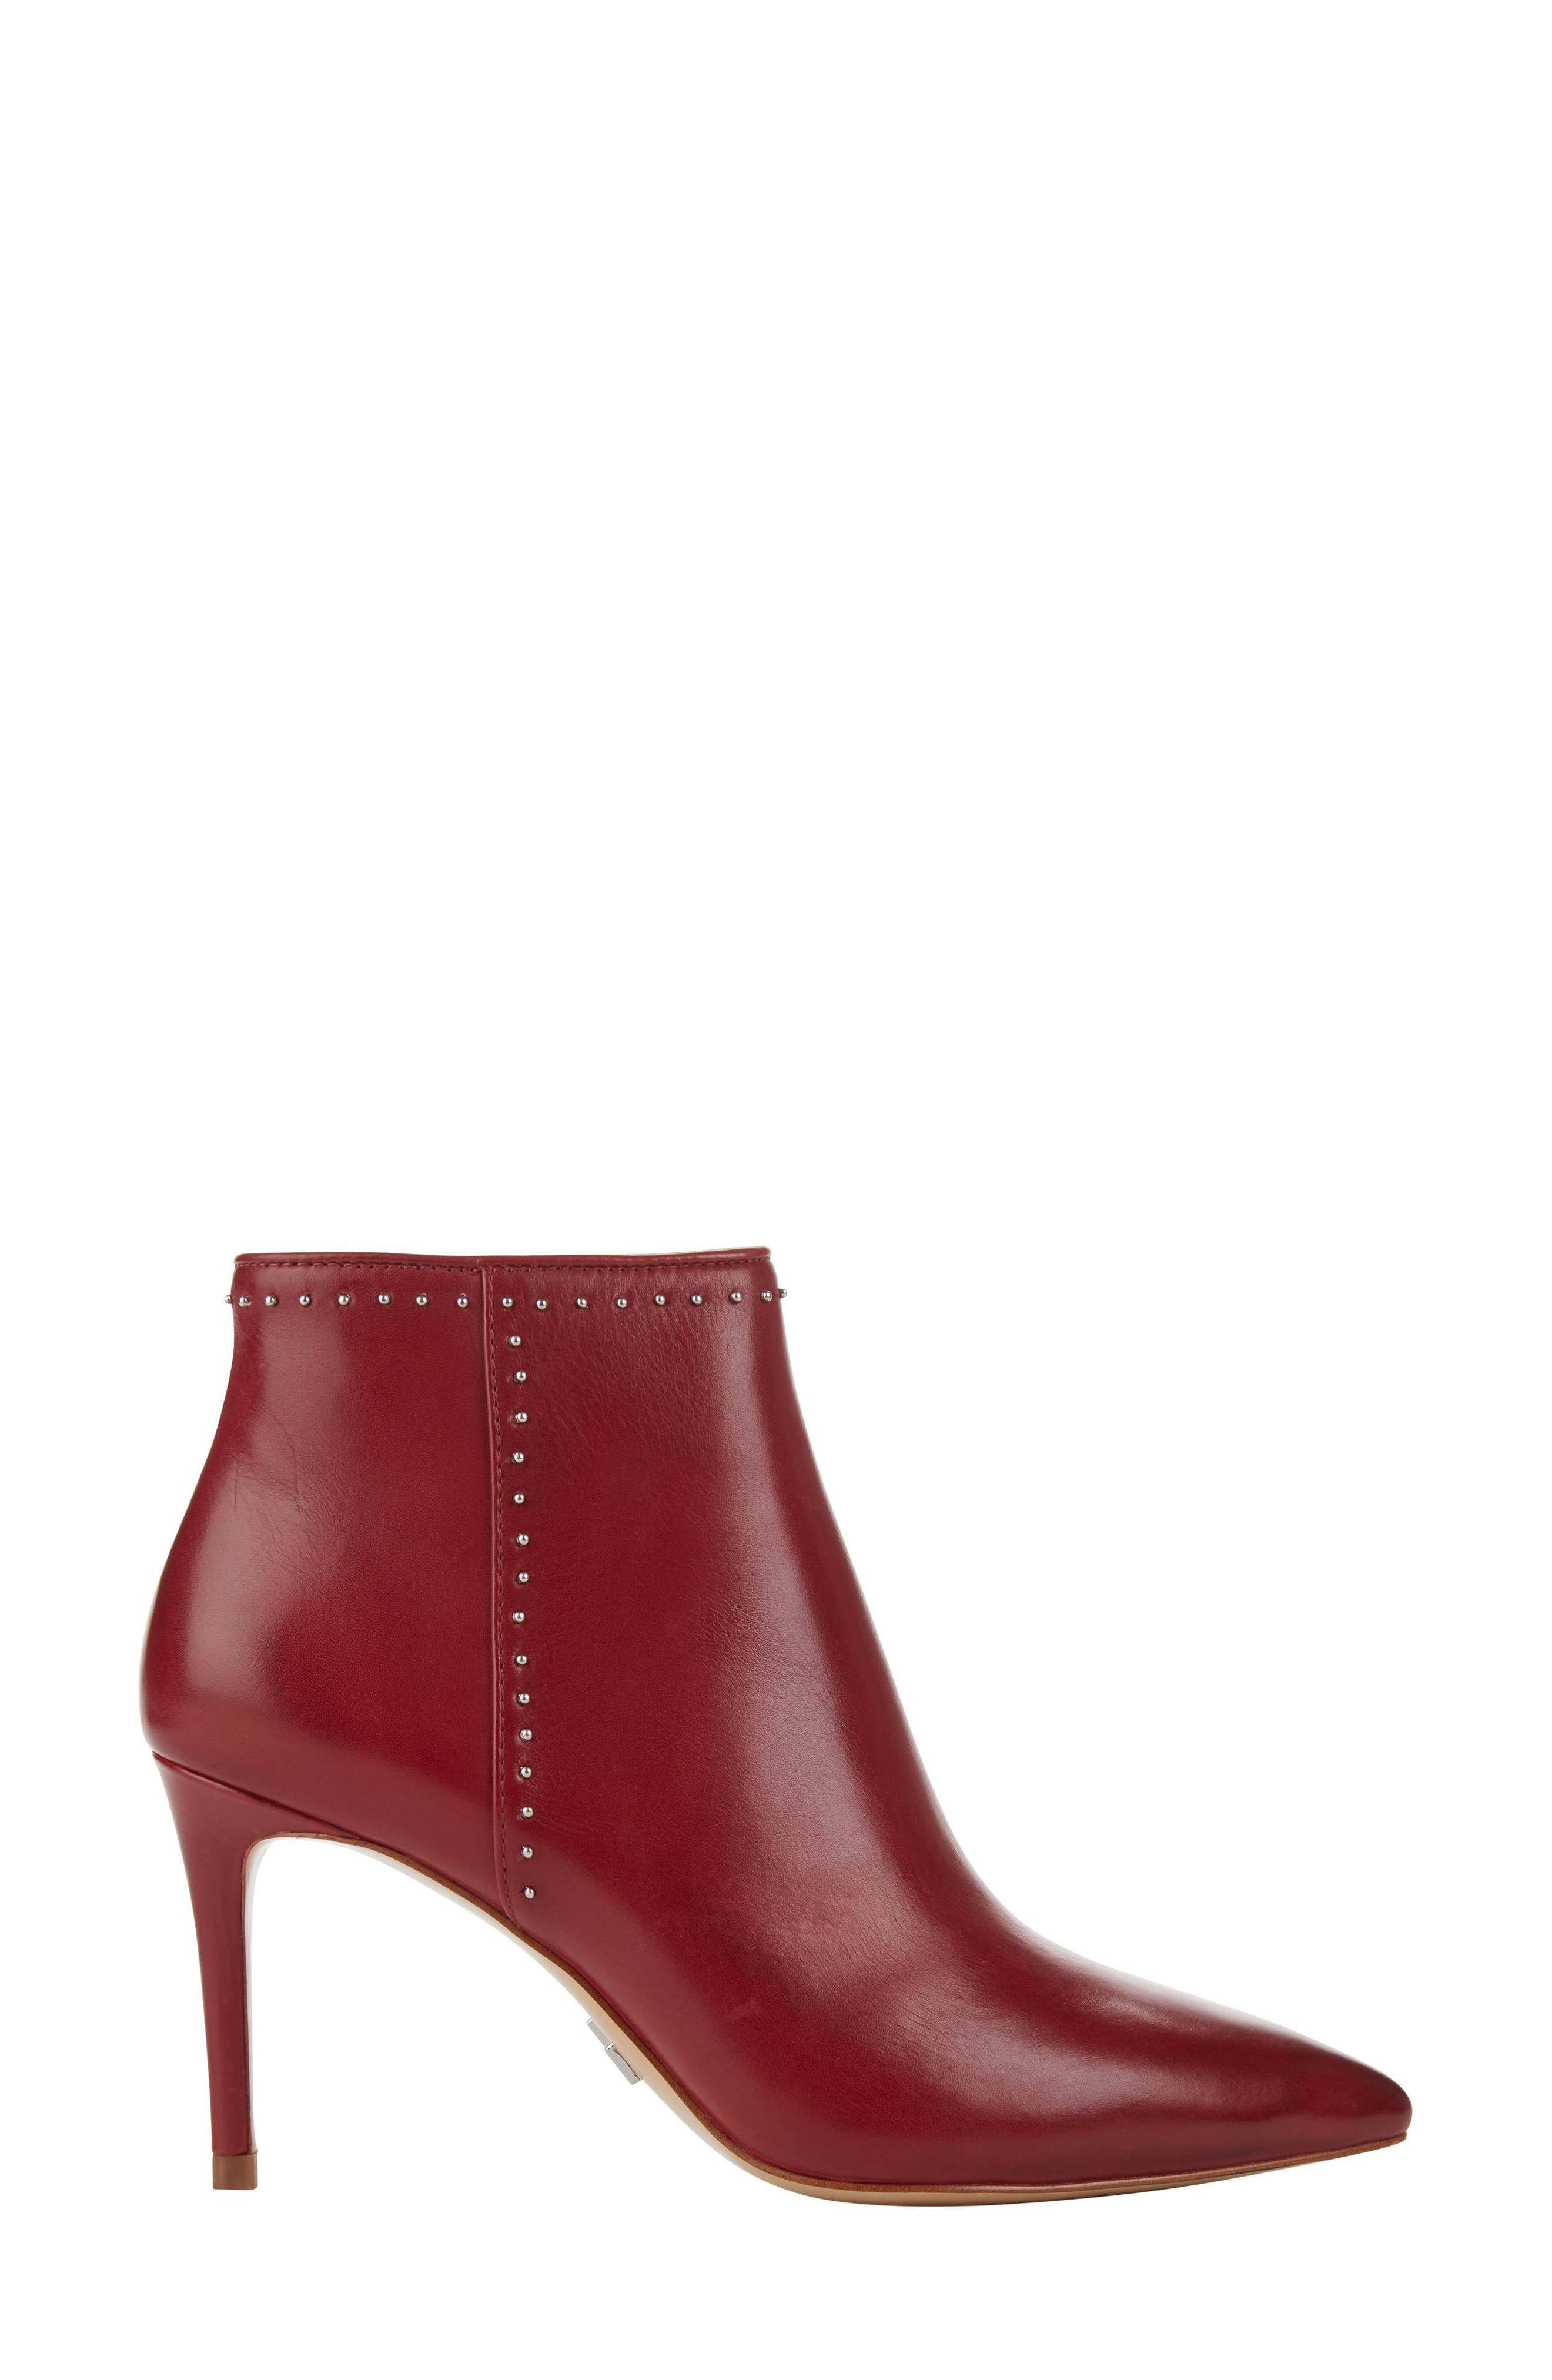 Donna Karan Lizzy Studded Bootie,                             Alternate thumbnail 3, color,                             621